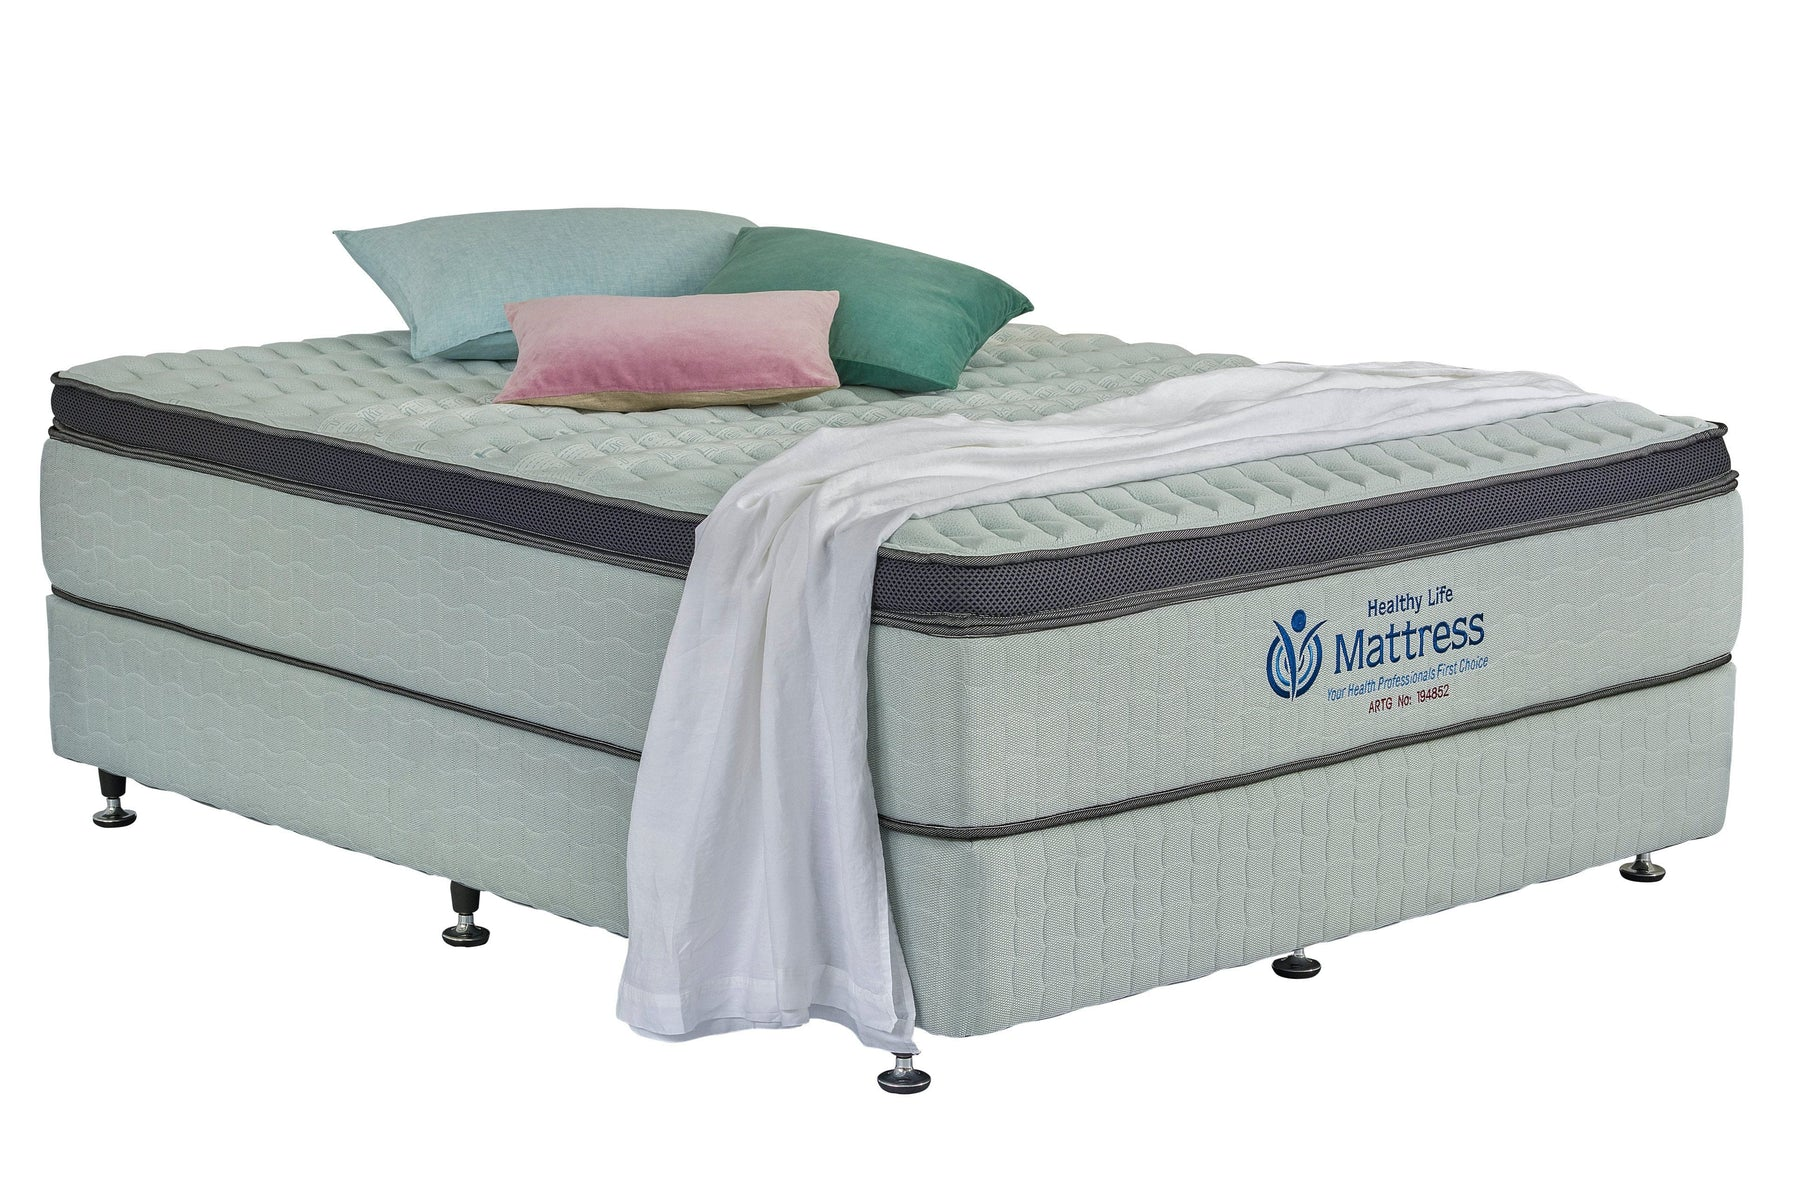 Healthy Life Mattress Firm